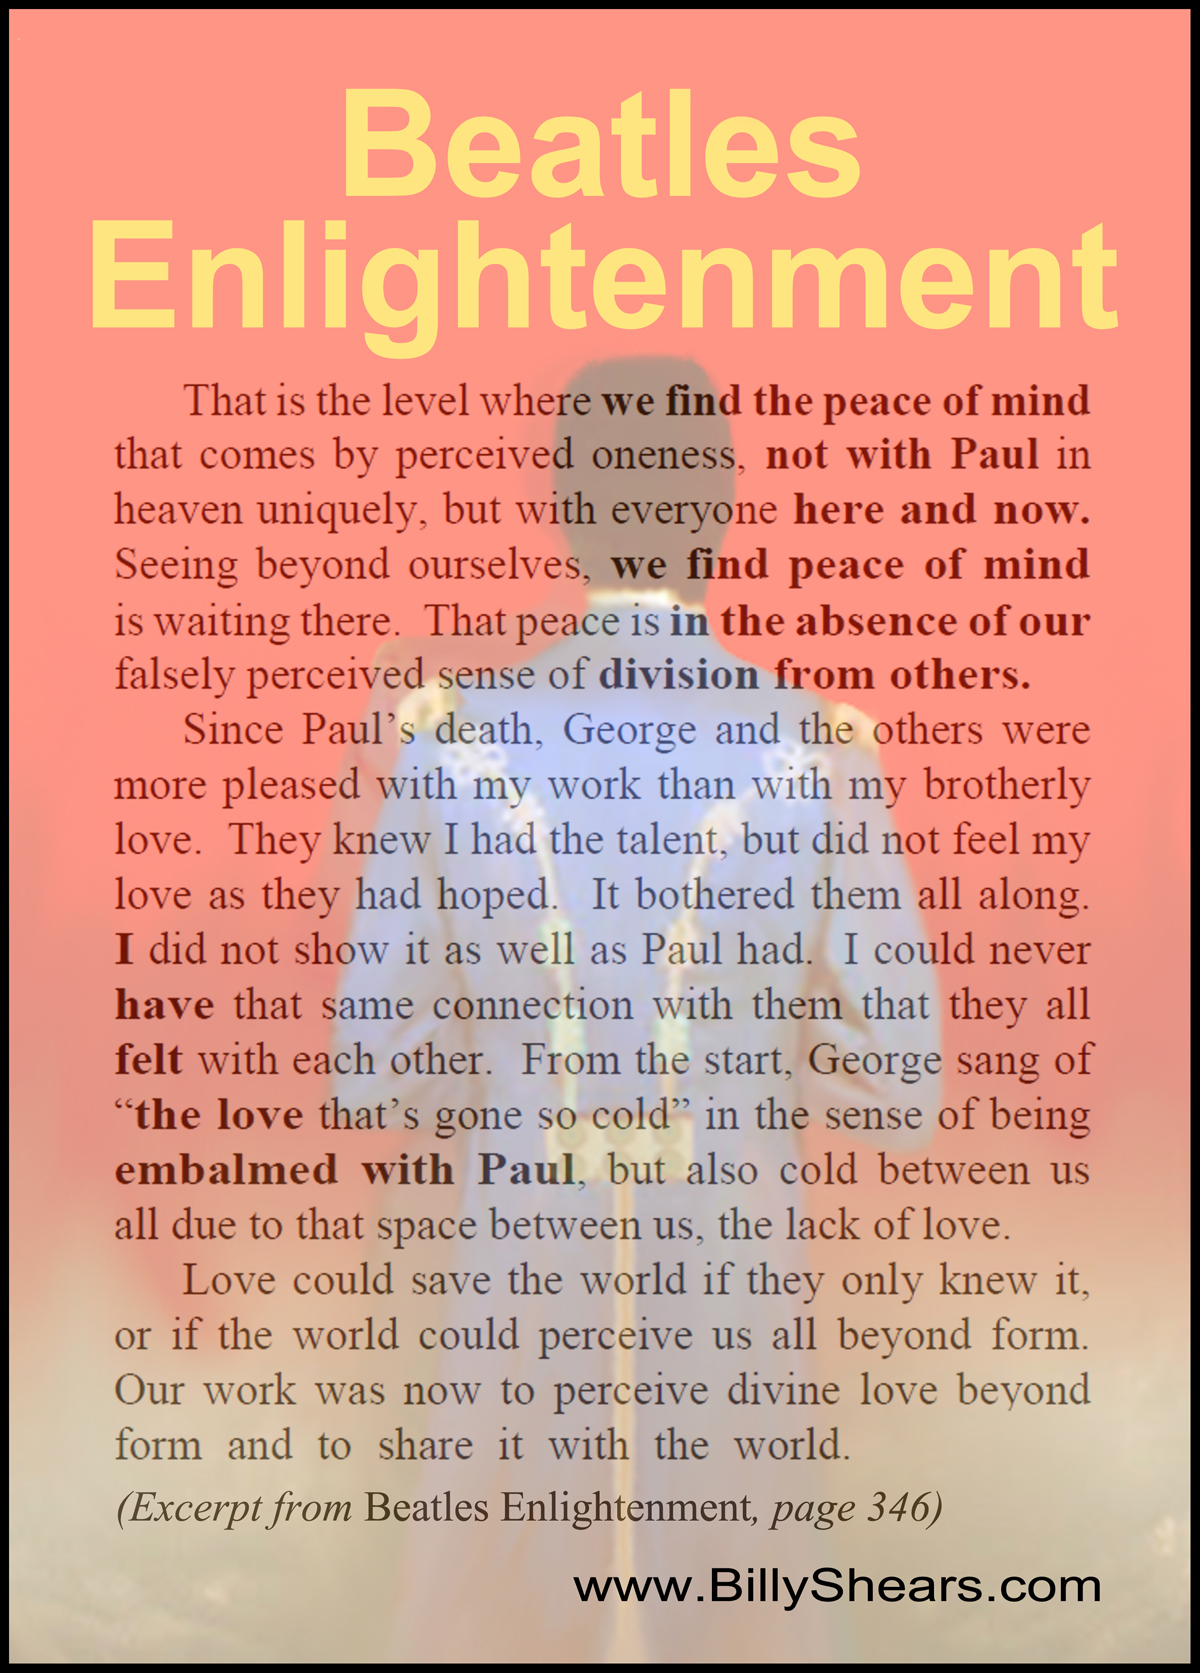 Quote from Beatles Enlightenment